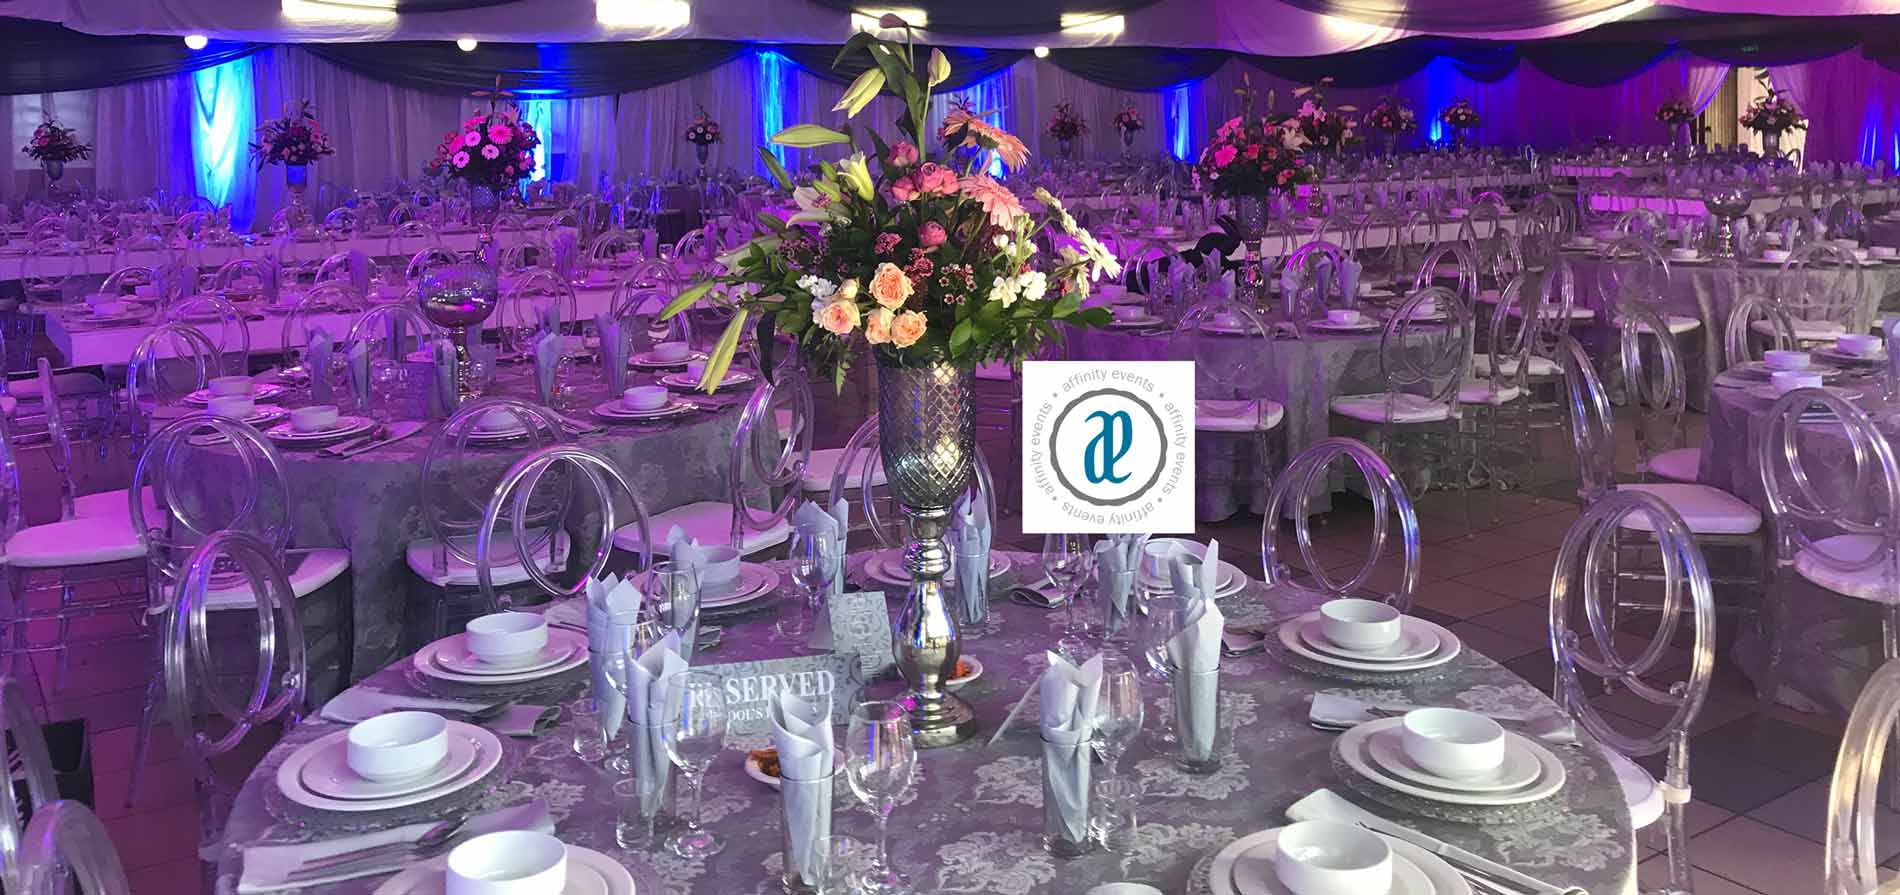 event hire services south africa